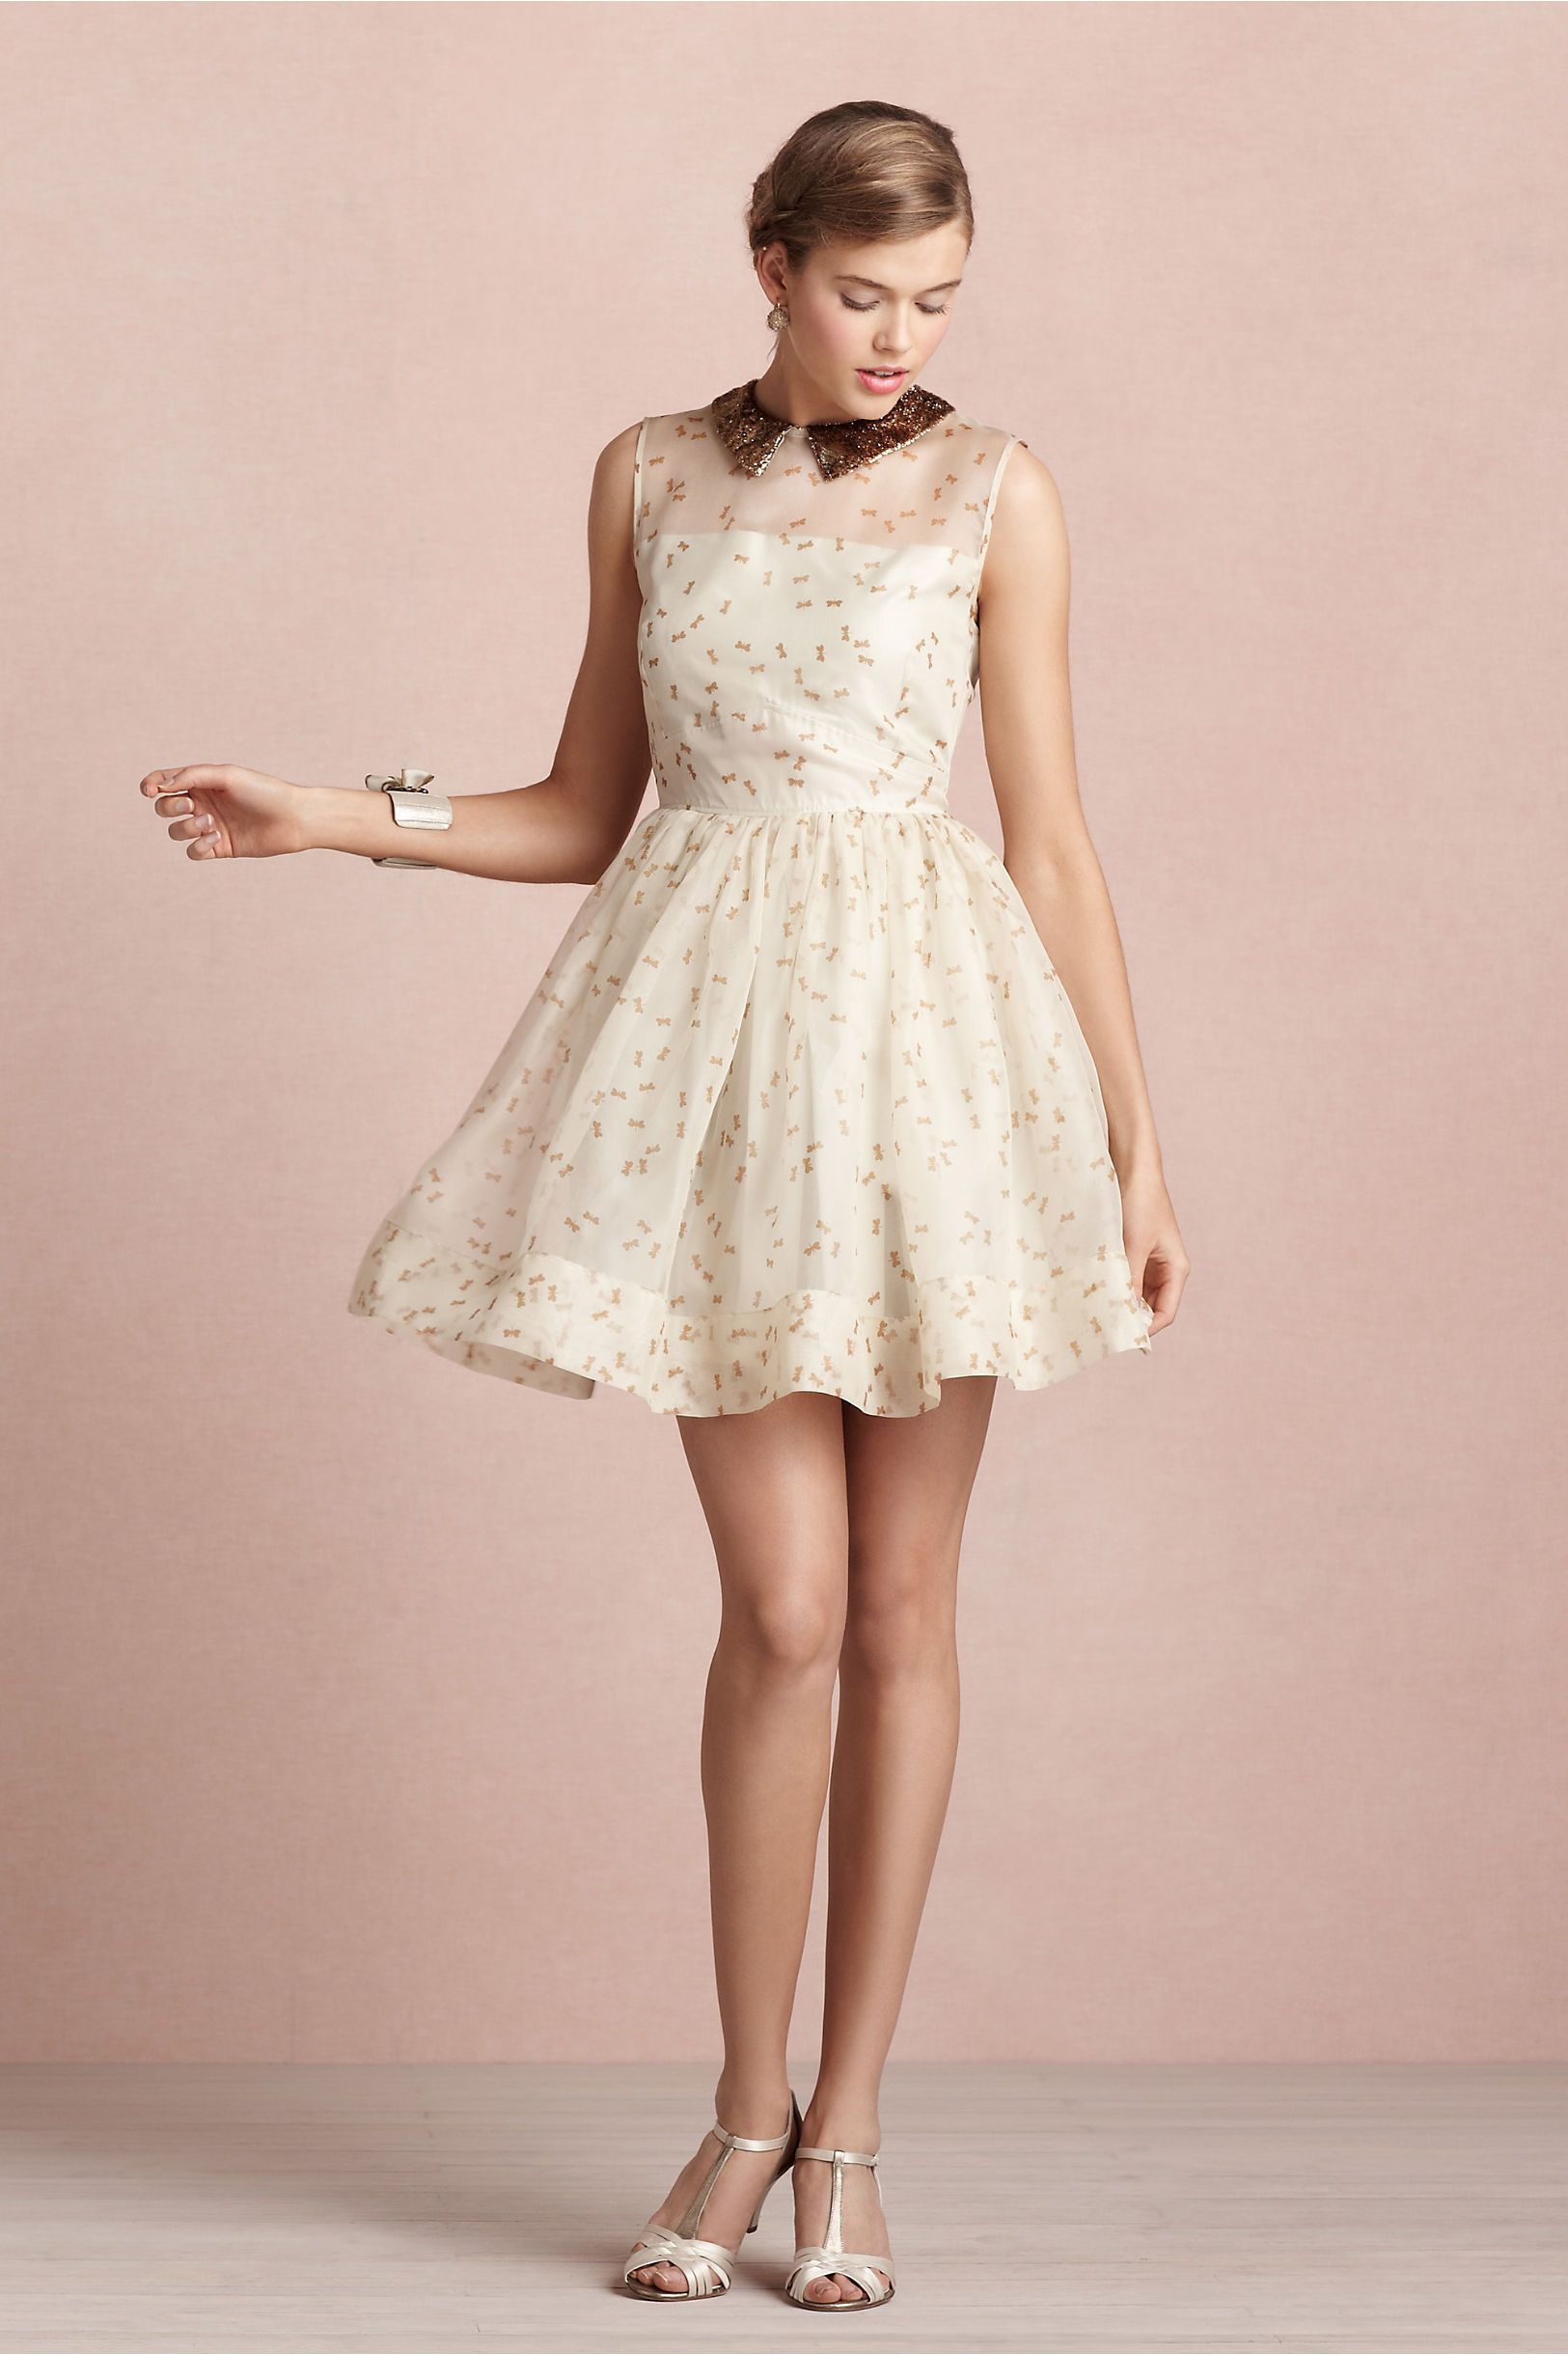 Dropwing Dress from BHLDN | MOH | Pinterest | Shop sale, Party ...